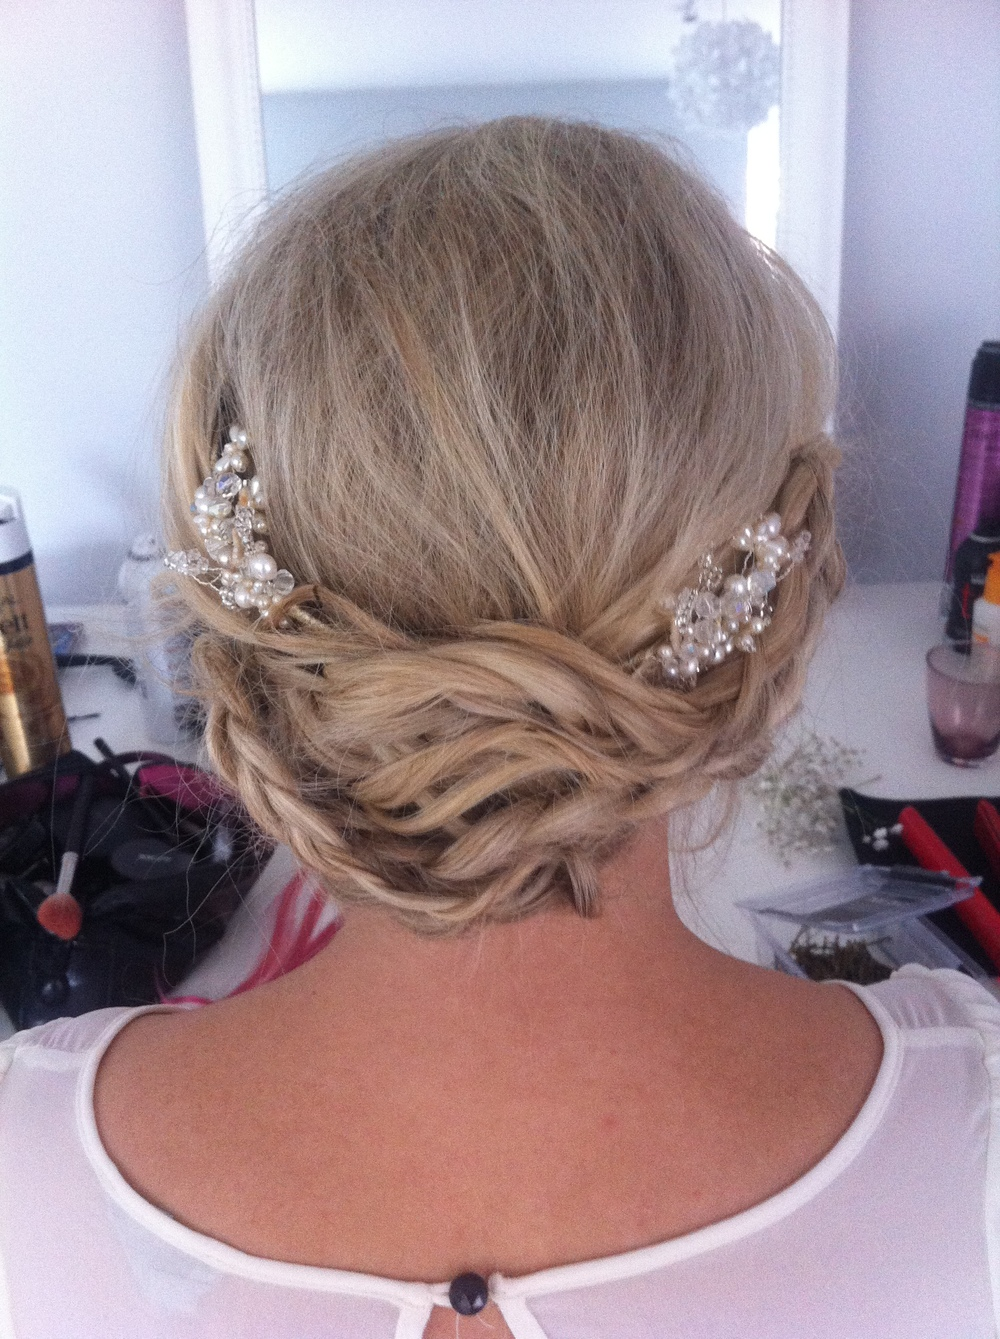 Bridal hair with plaits